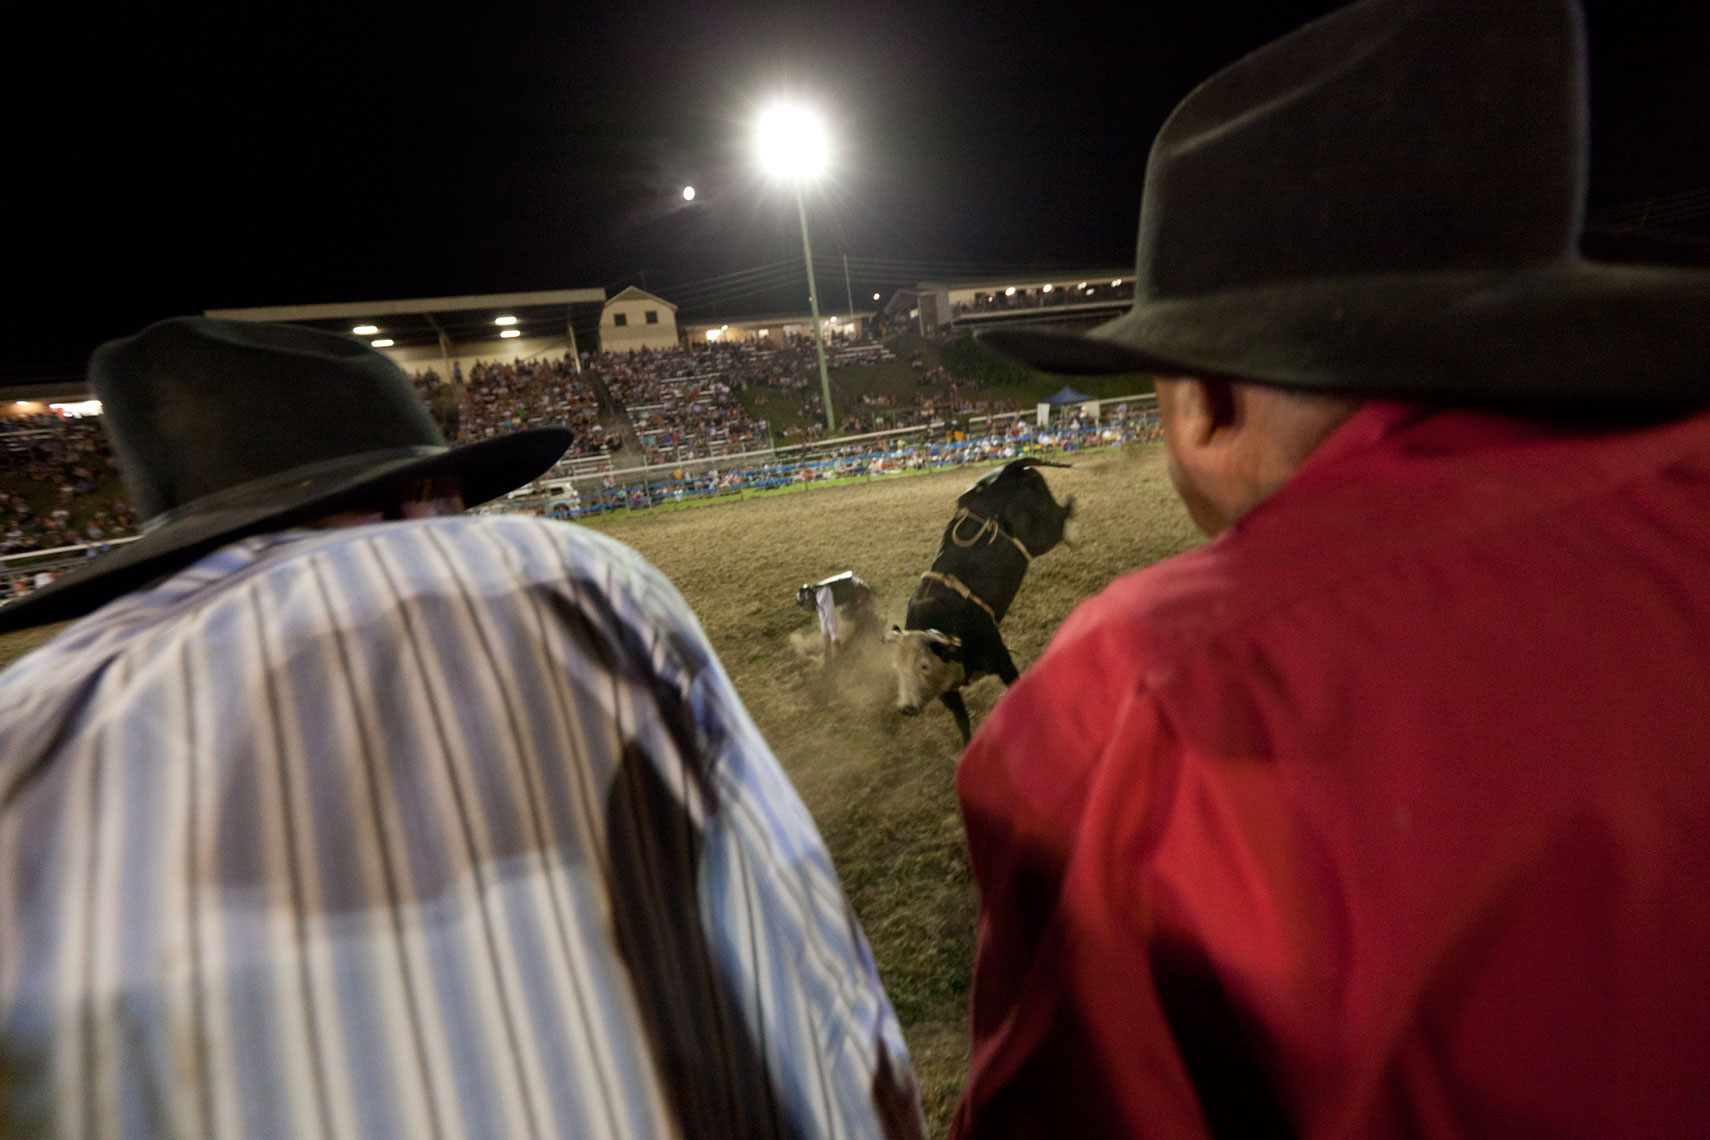 018_MacleanRodeo_MG_4927.jpg